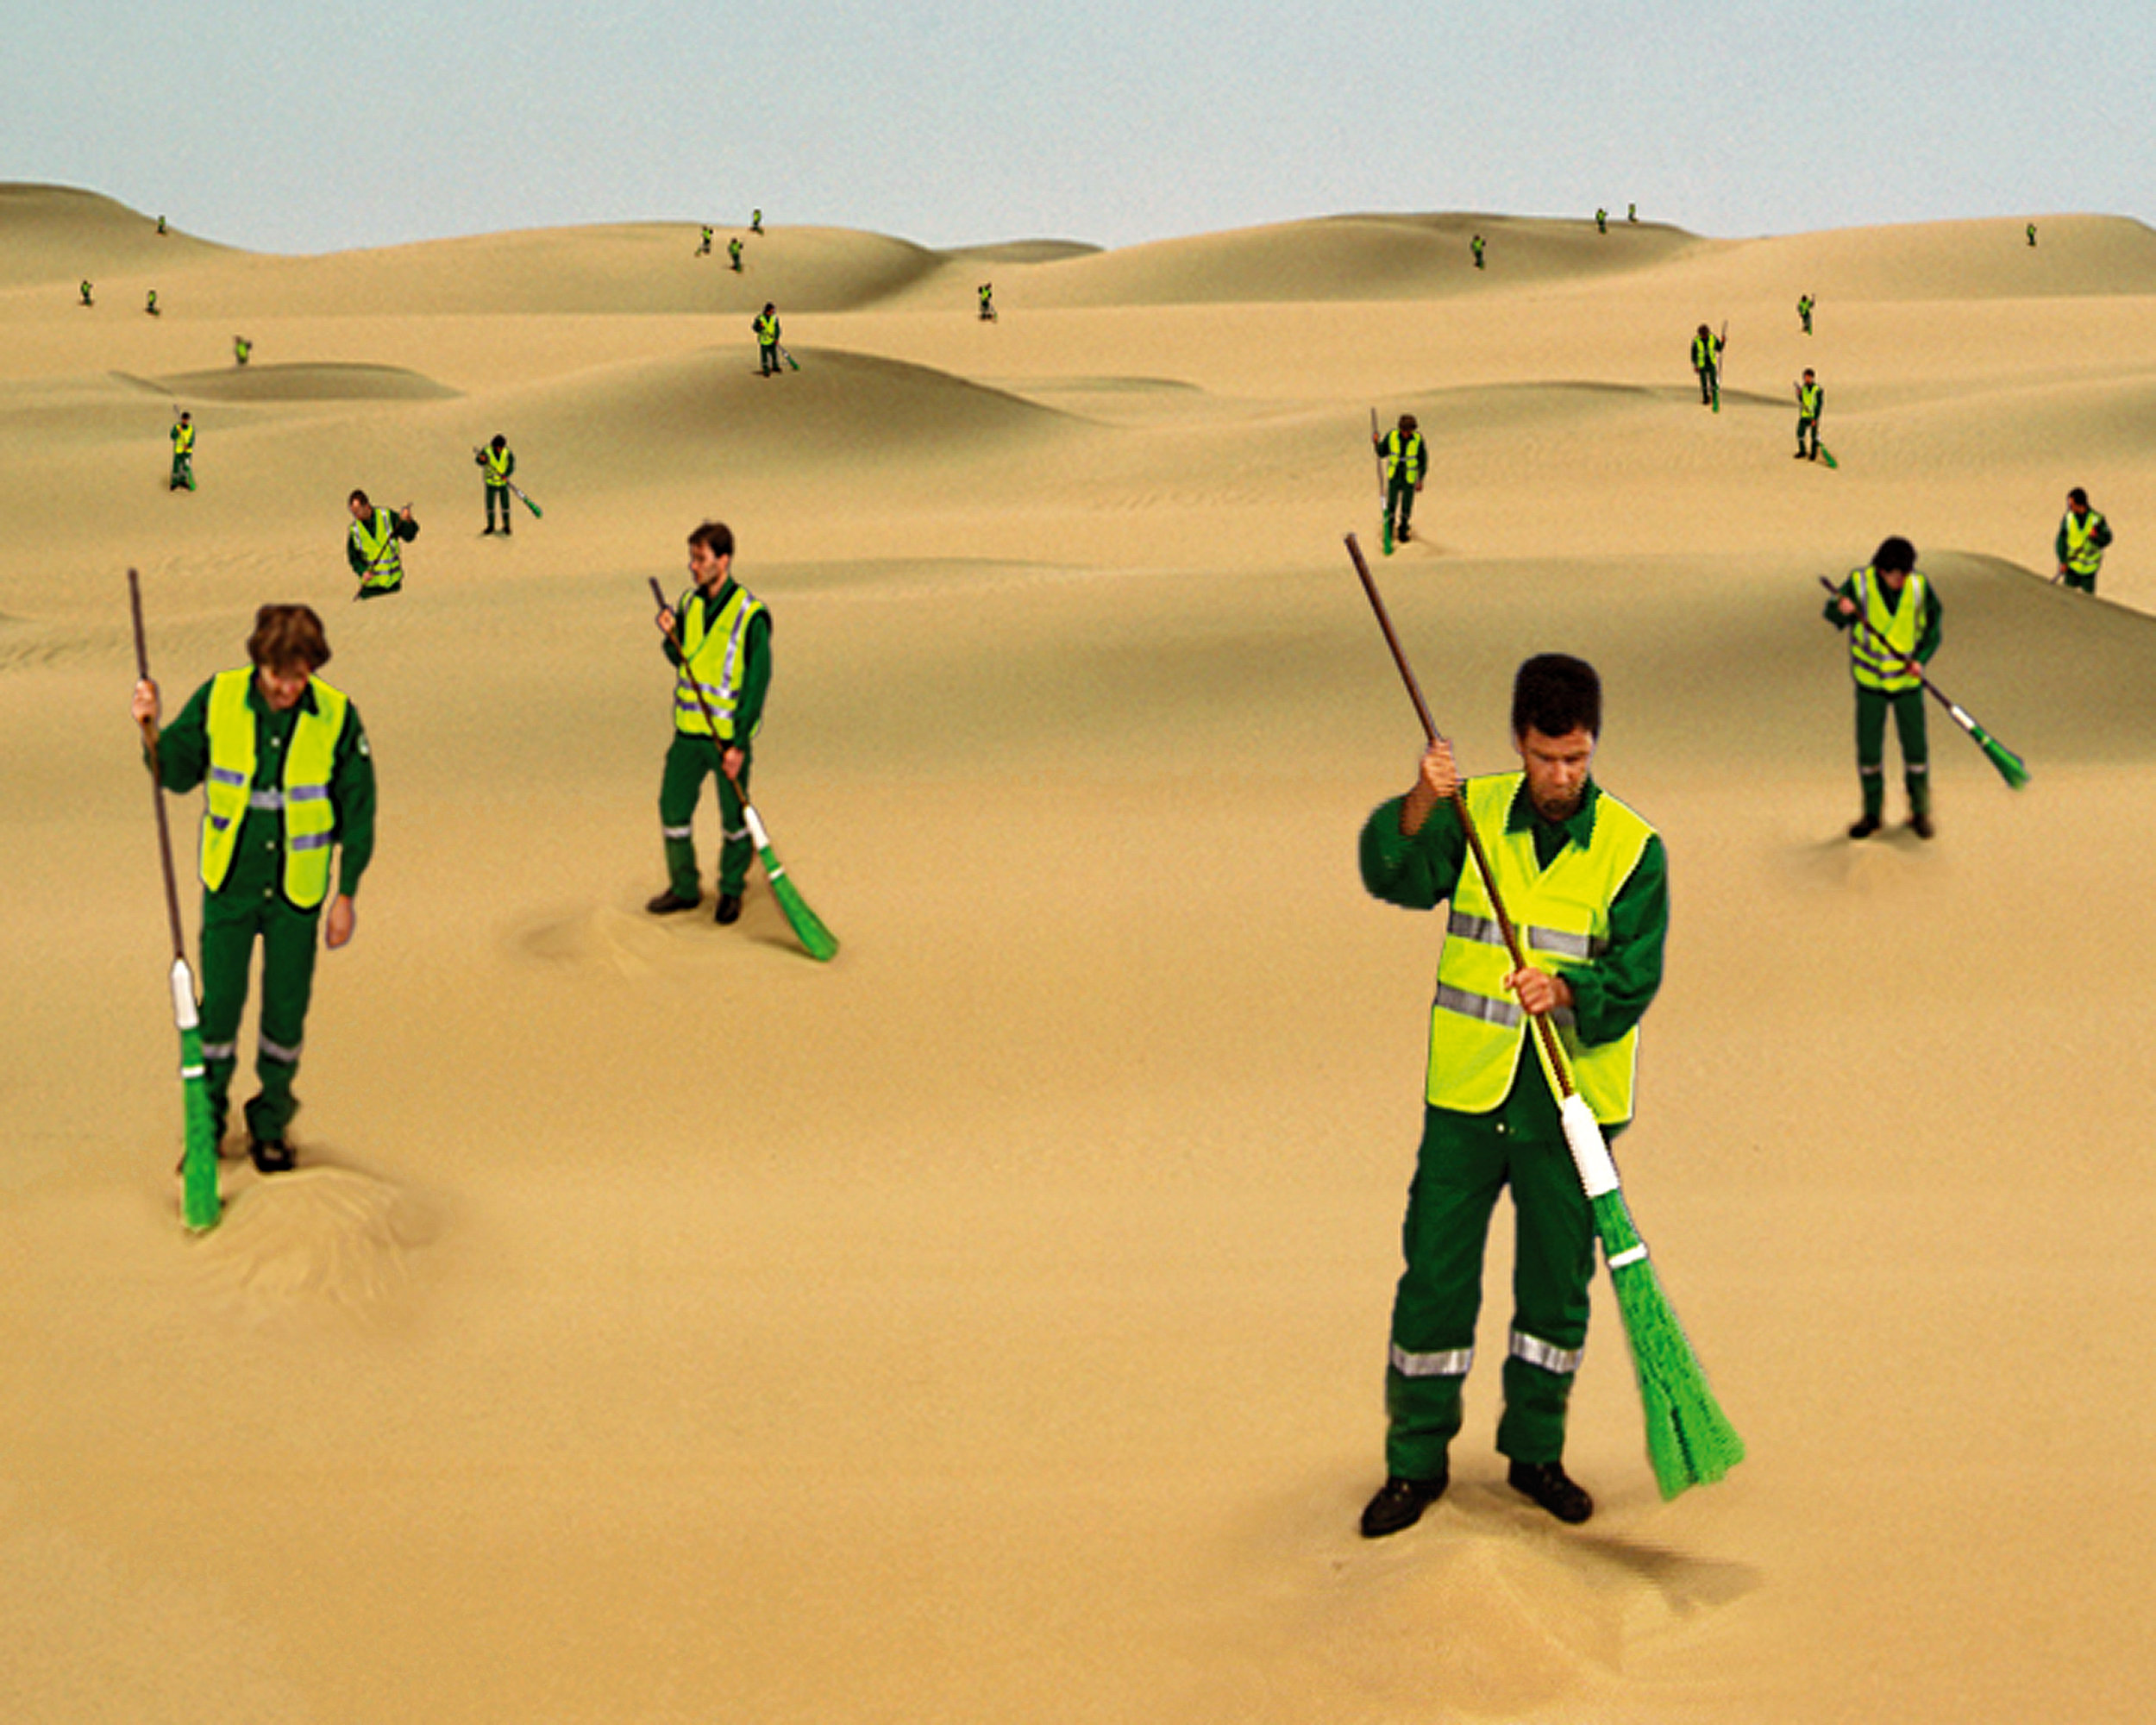 In the video The Desert Sweepers, she uses Paris corporation road sweepers, recognizable in their uniforms. The infinite repetitiveness of their task, underscored by the sound of their sweeping, seems utterly absurd in this desert scape, but a closer look reveals a face to each human being behind this anonymous group.  在录像《沙漠清扫者》中,通过明显的制服,我们可以看出她拍摄的是巴黎公司的道路清扫工。清扫的声响强调了他们工作的无限重复性,似乎使这份工作在这片沙漠景观中显得十分荒谬,但仔细观察后,却可以发现,在这个毫无个性特征的工作组中,每个人都有一张属于自己的脸。  沙漠清扫者,2003年,单屏录像,艺术家和纽约Peter Blum画廊提供图片 The Desert Sweeper, 2003, single channel, video, ©sumeitse ,Courtesy the artist & Peter Blum Gallery, NY